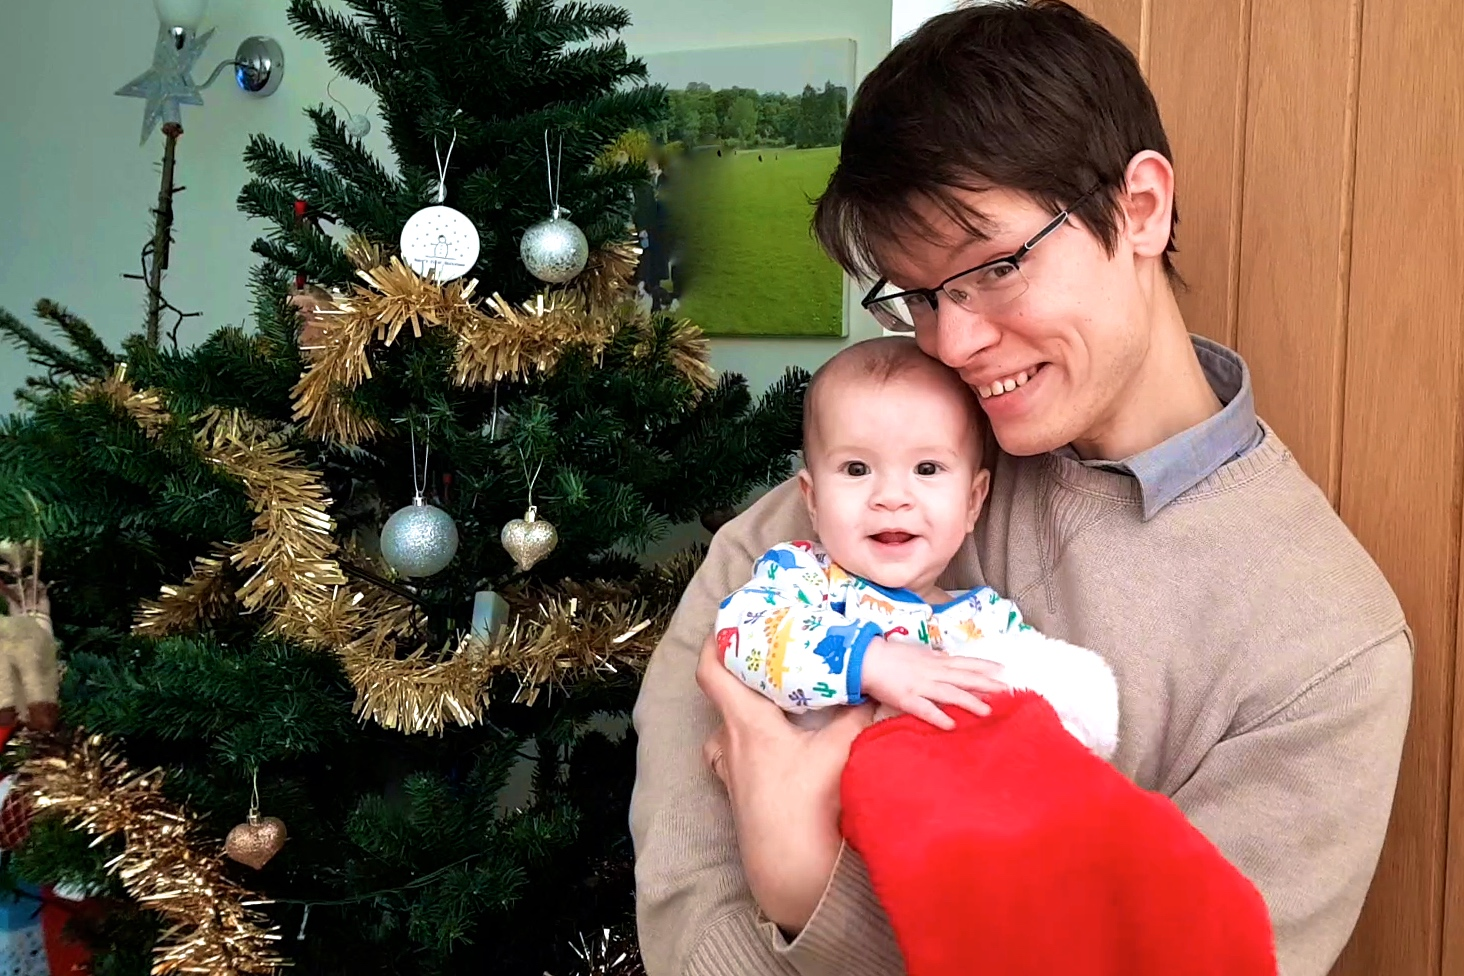 Adam and his daughter at Christmas